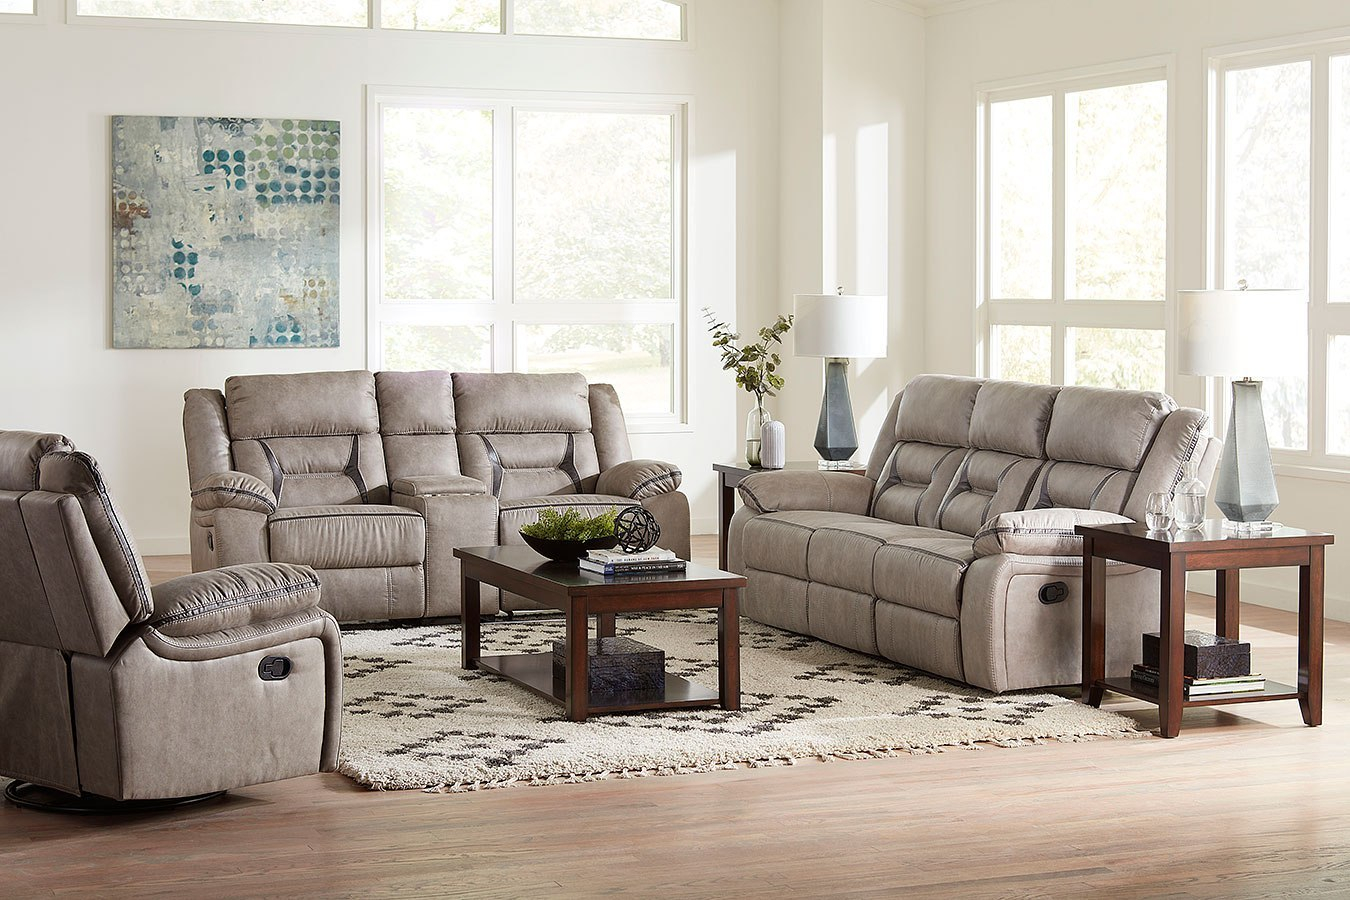 Acropolis Reclining Living Room Set with 11 Smart Tricks of How to Craft Deals On Living Room Sets